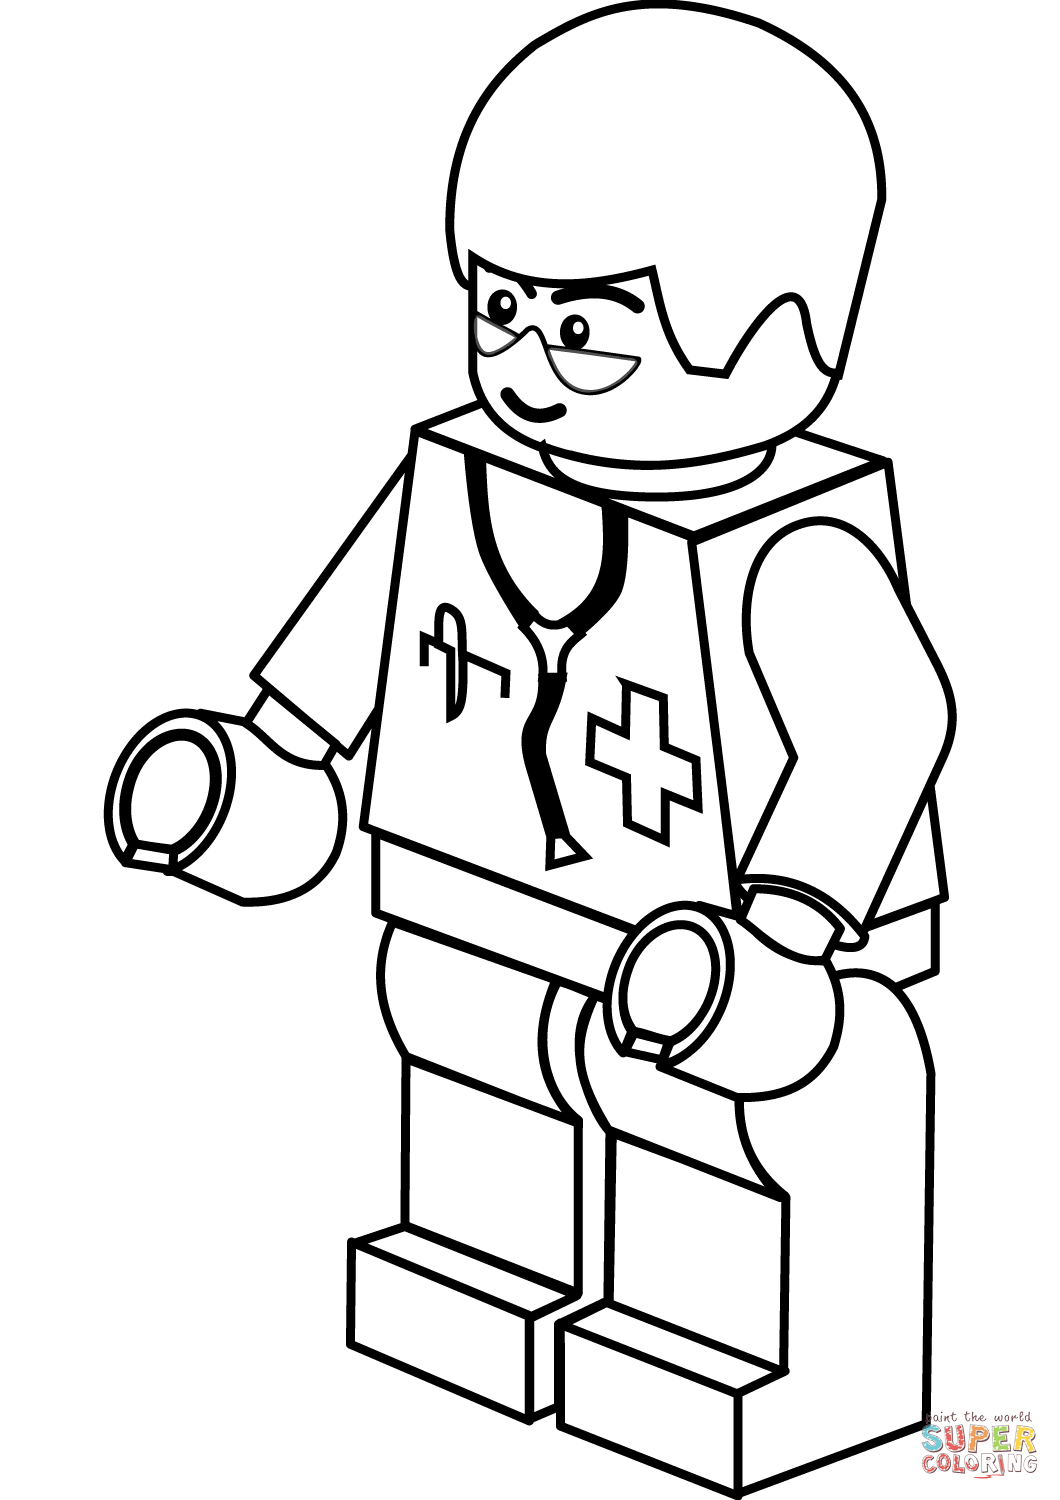 Lego Doctor Coloring Page Free Printable Coloring Pages Lego Coloring Pages Lego Coloring Minion Coloring Pages